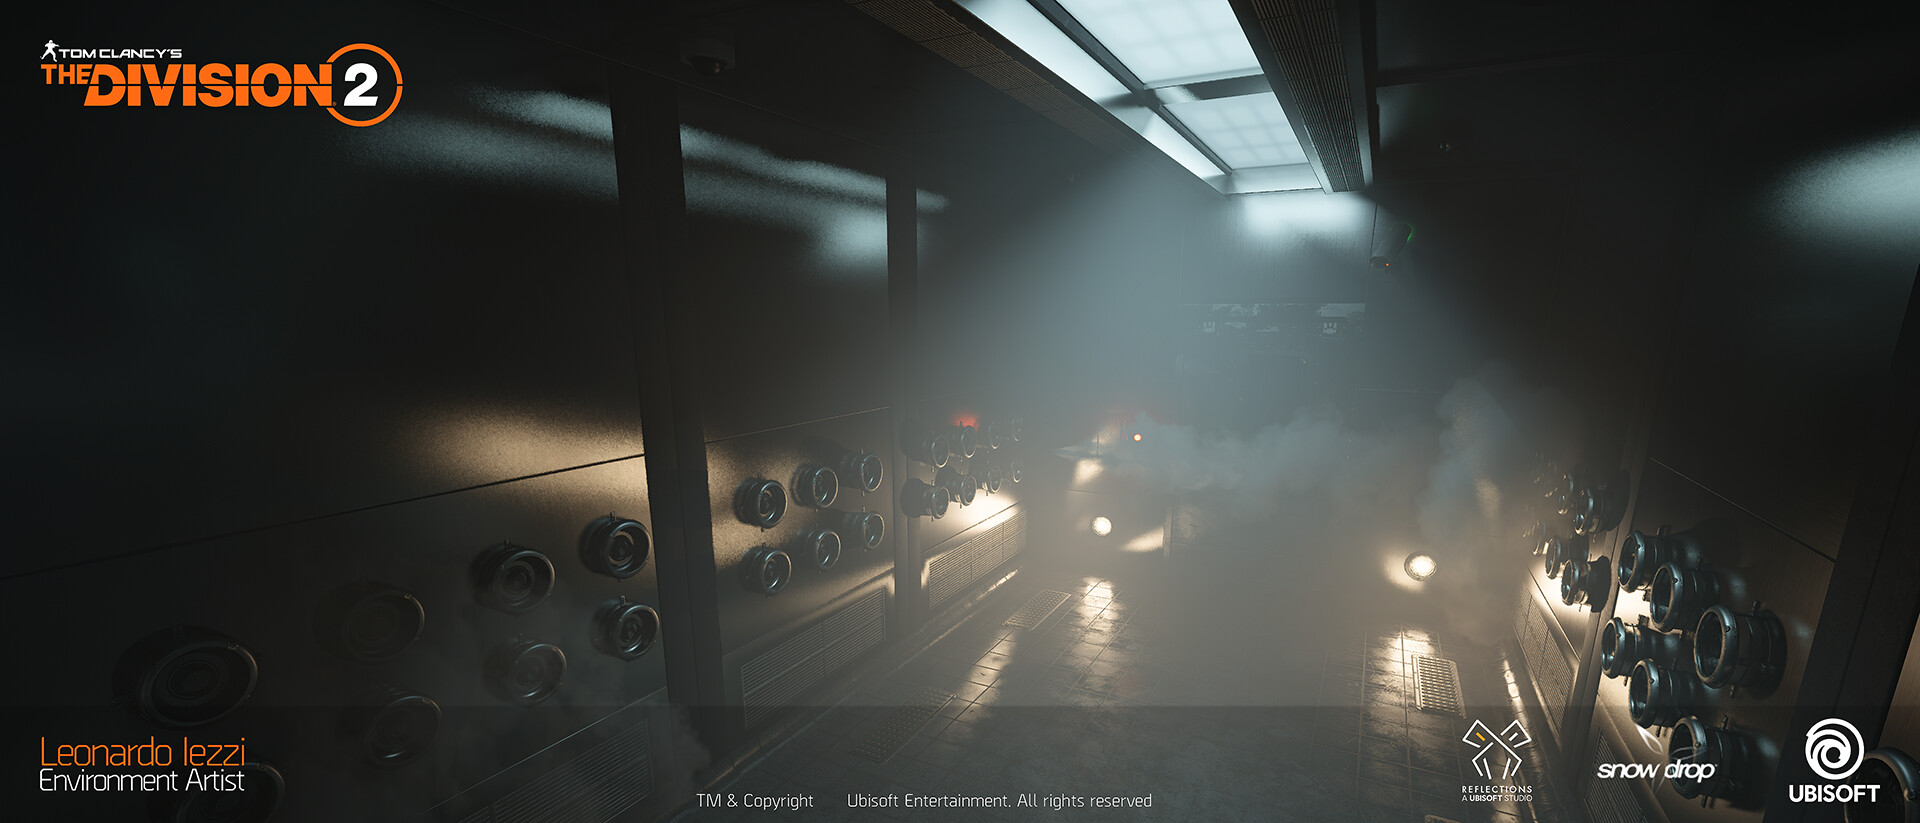 Leonardo iezzi leonardo iezzi the division 2 environment art 07 cleaningroom 002 wide